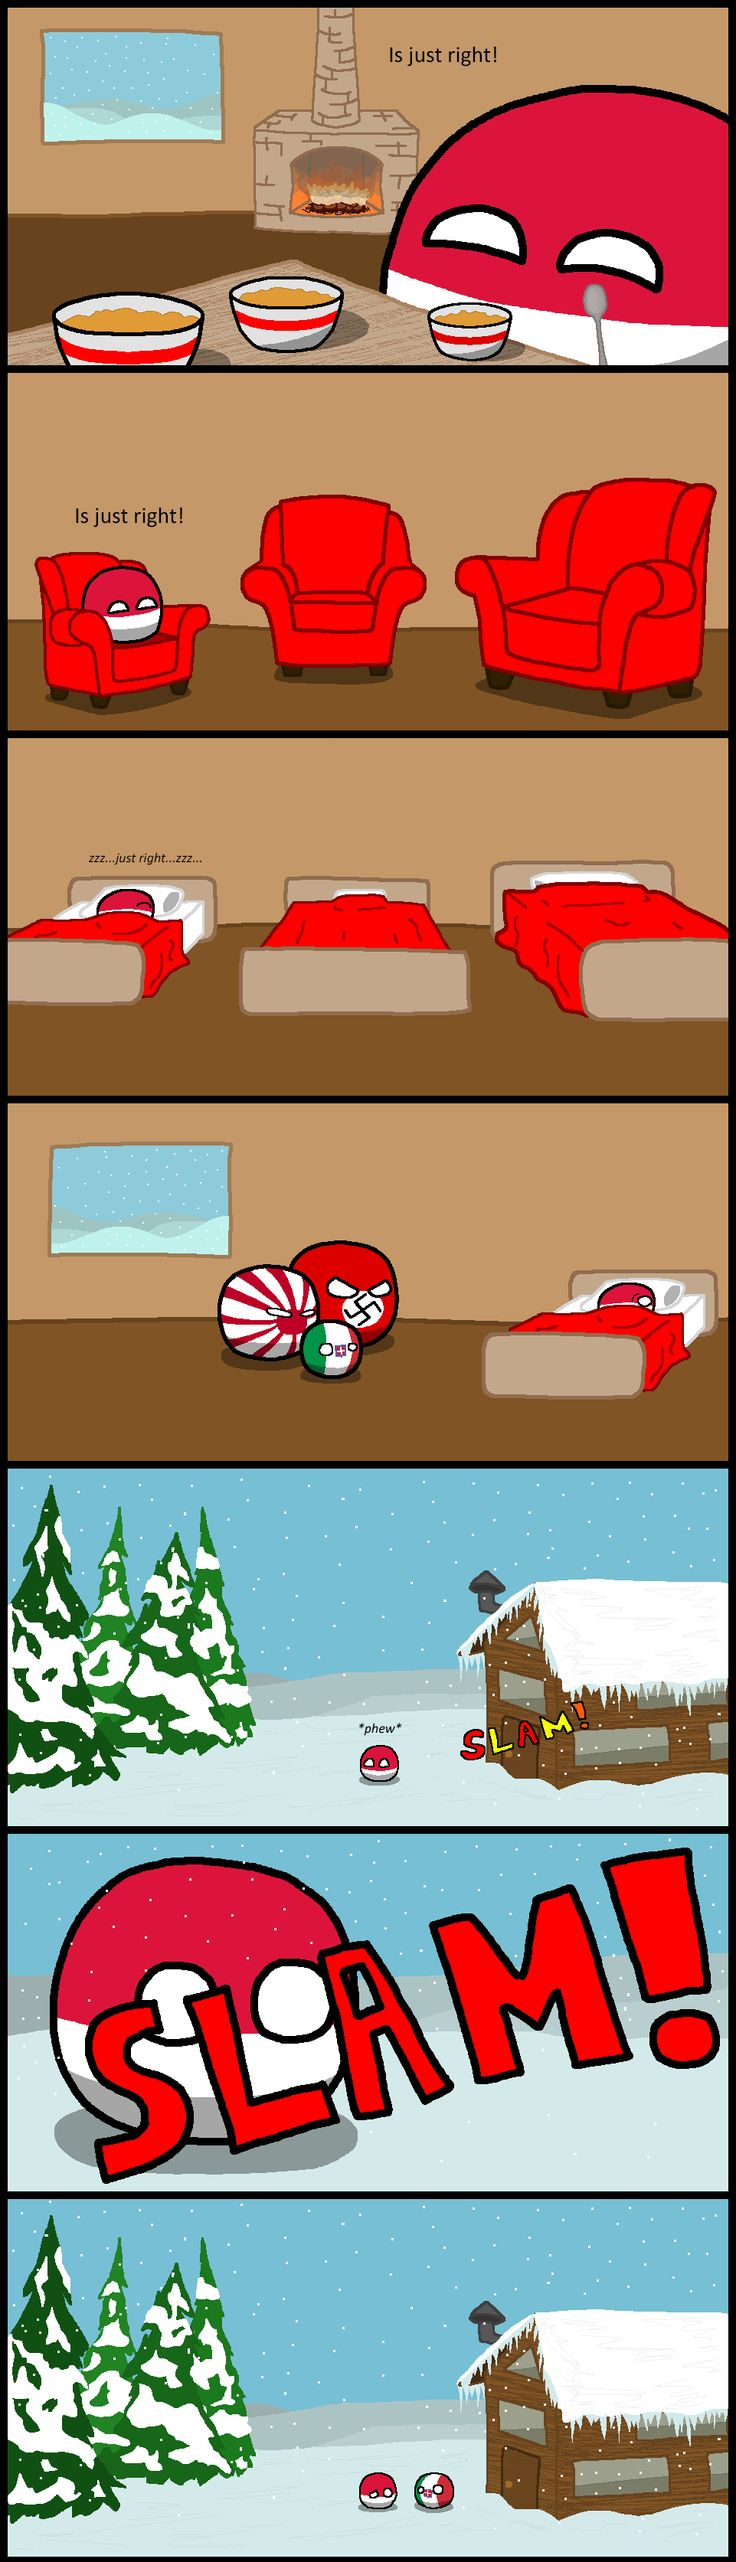 """Polskalocks"" Goldilocks and the Three Bears ( Poland, Germany, Japan, Italy ) by Baron koleye of  Kolaje #polandball #countryball #axis"